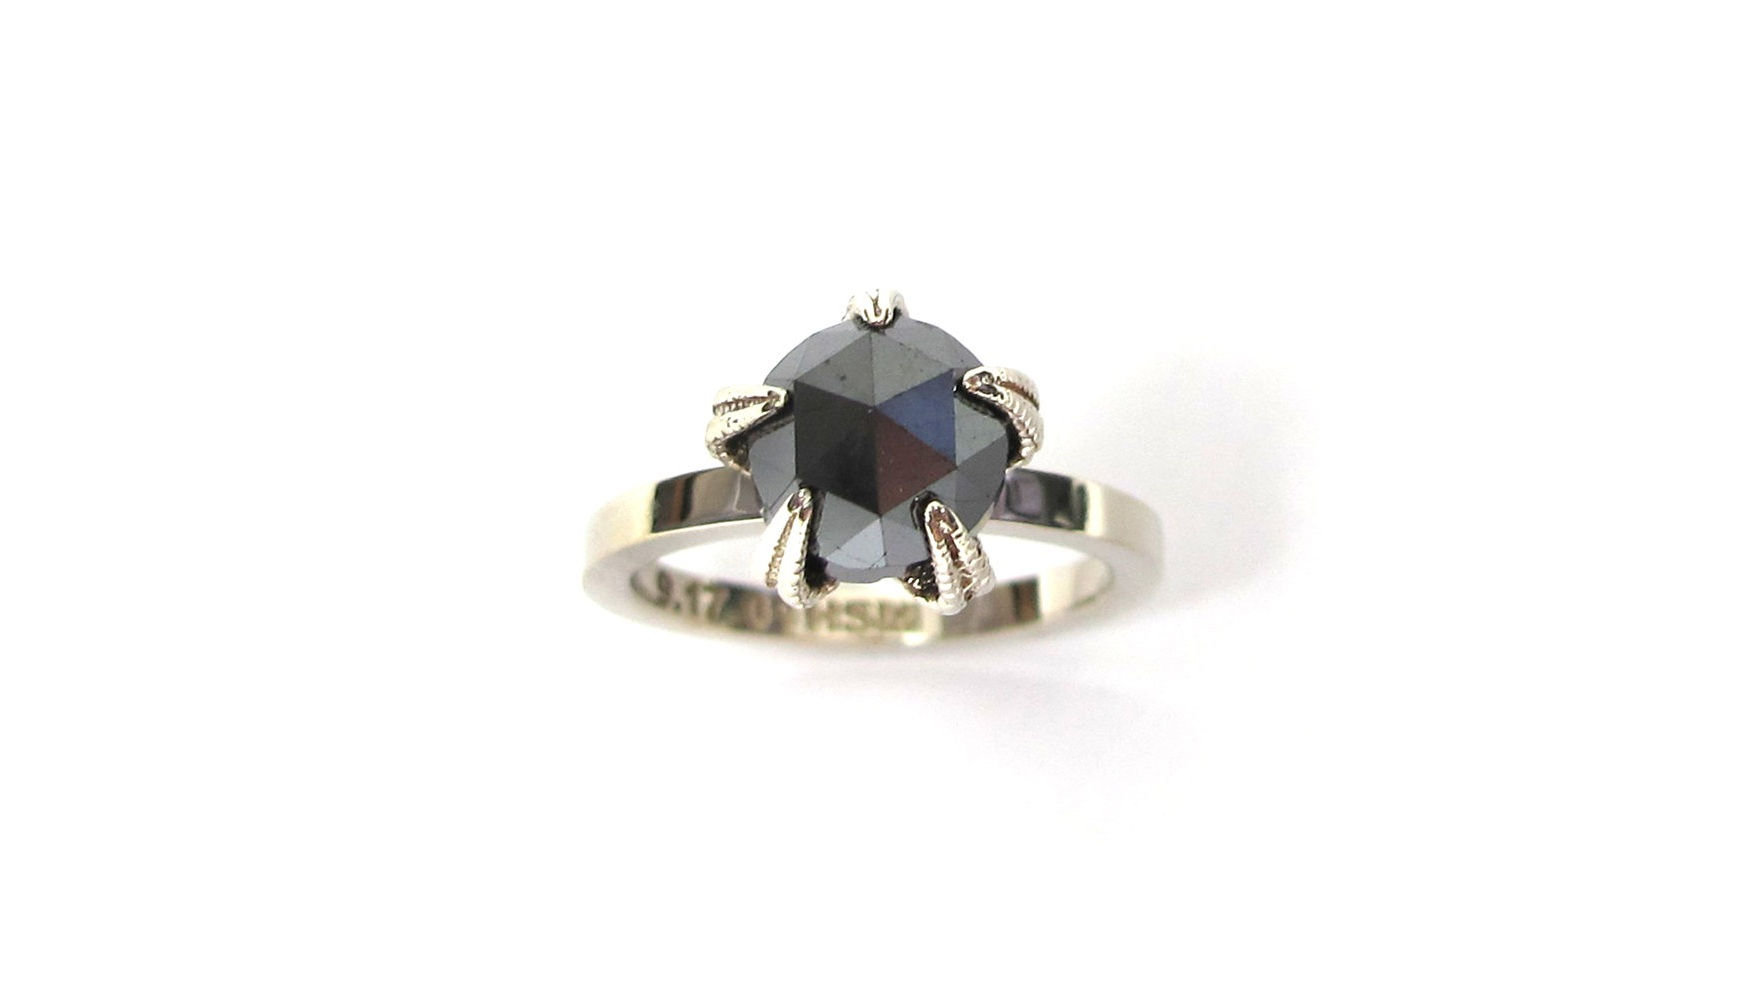 A Real Casting of a Starfish is the Claw Setting for this 14 White Gold Rose Cut Black Diamond Ring